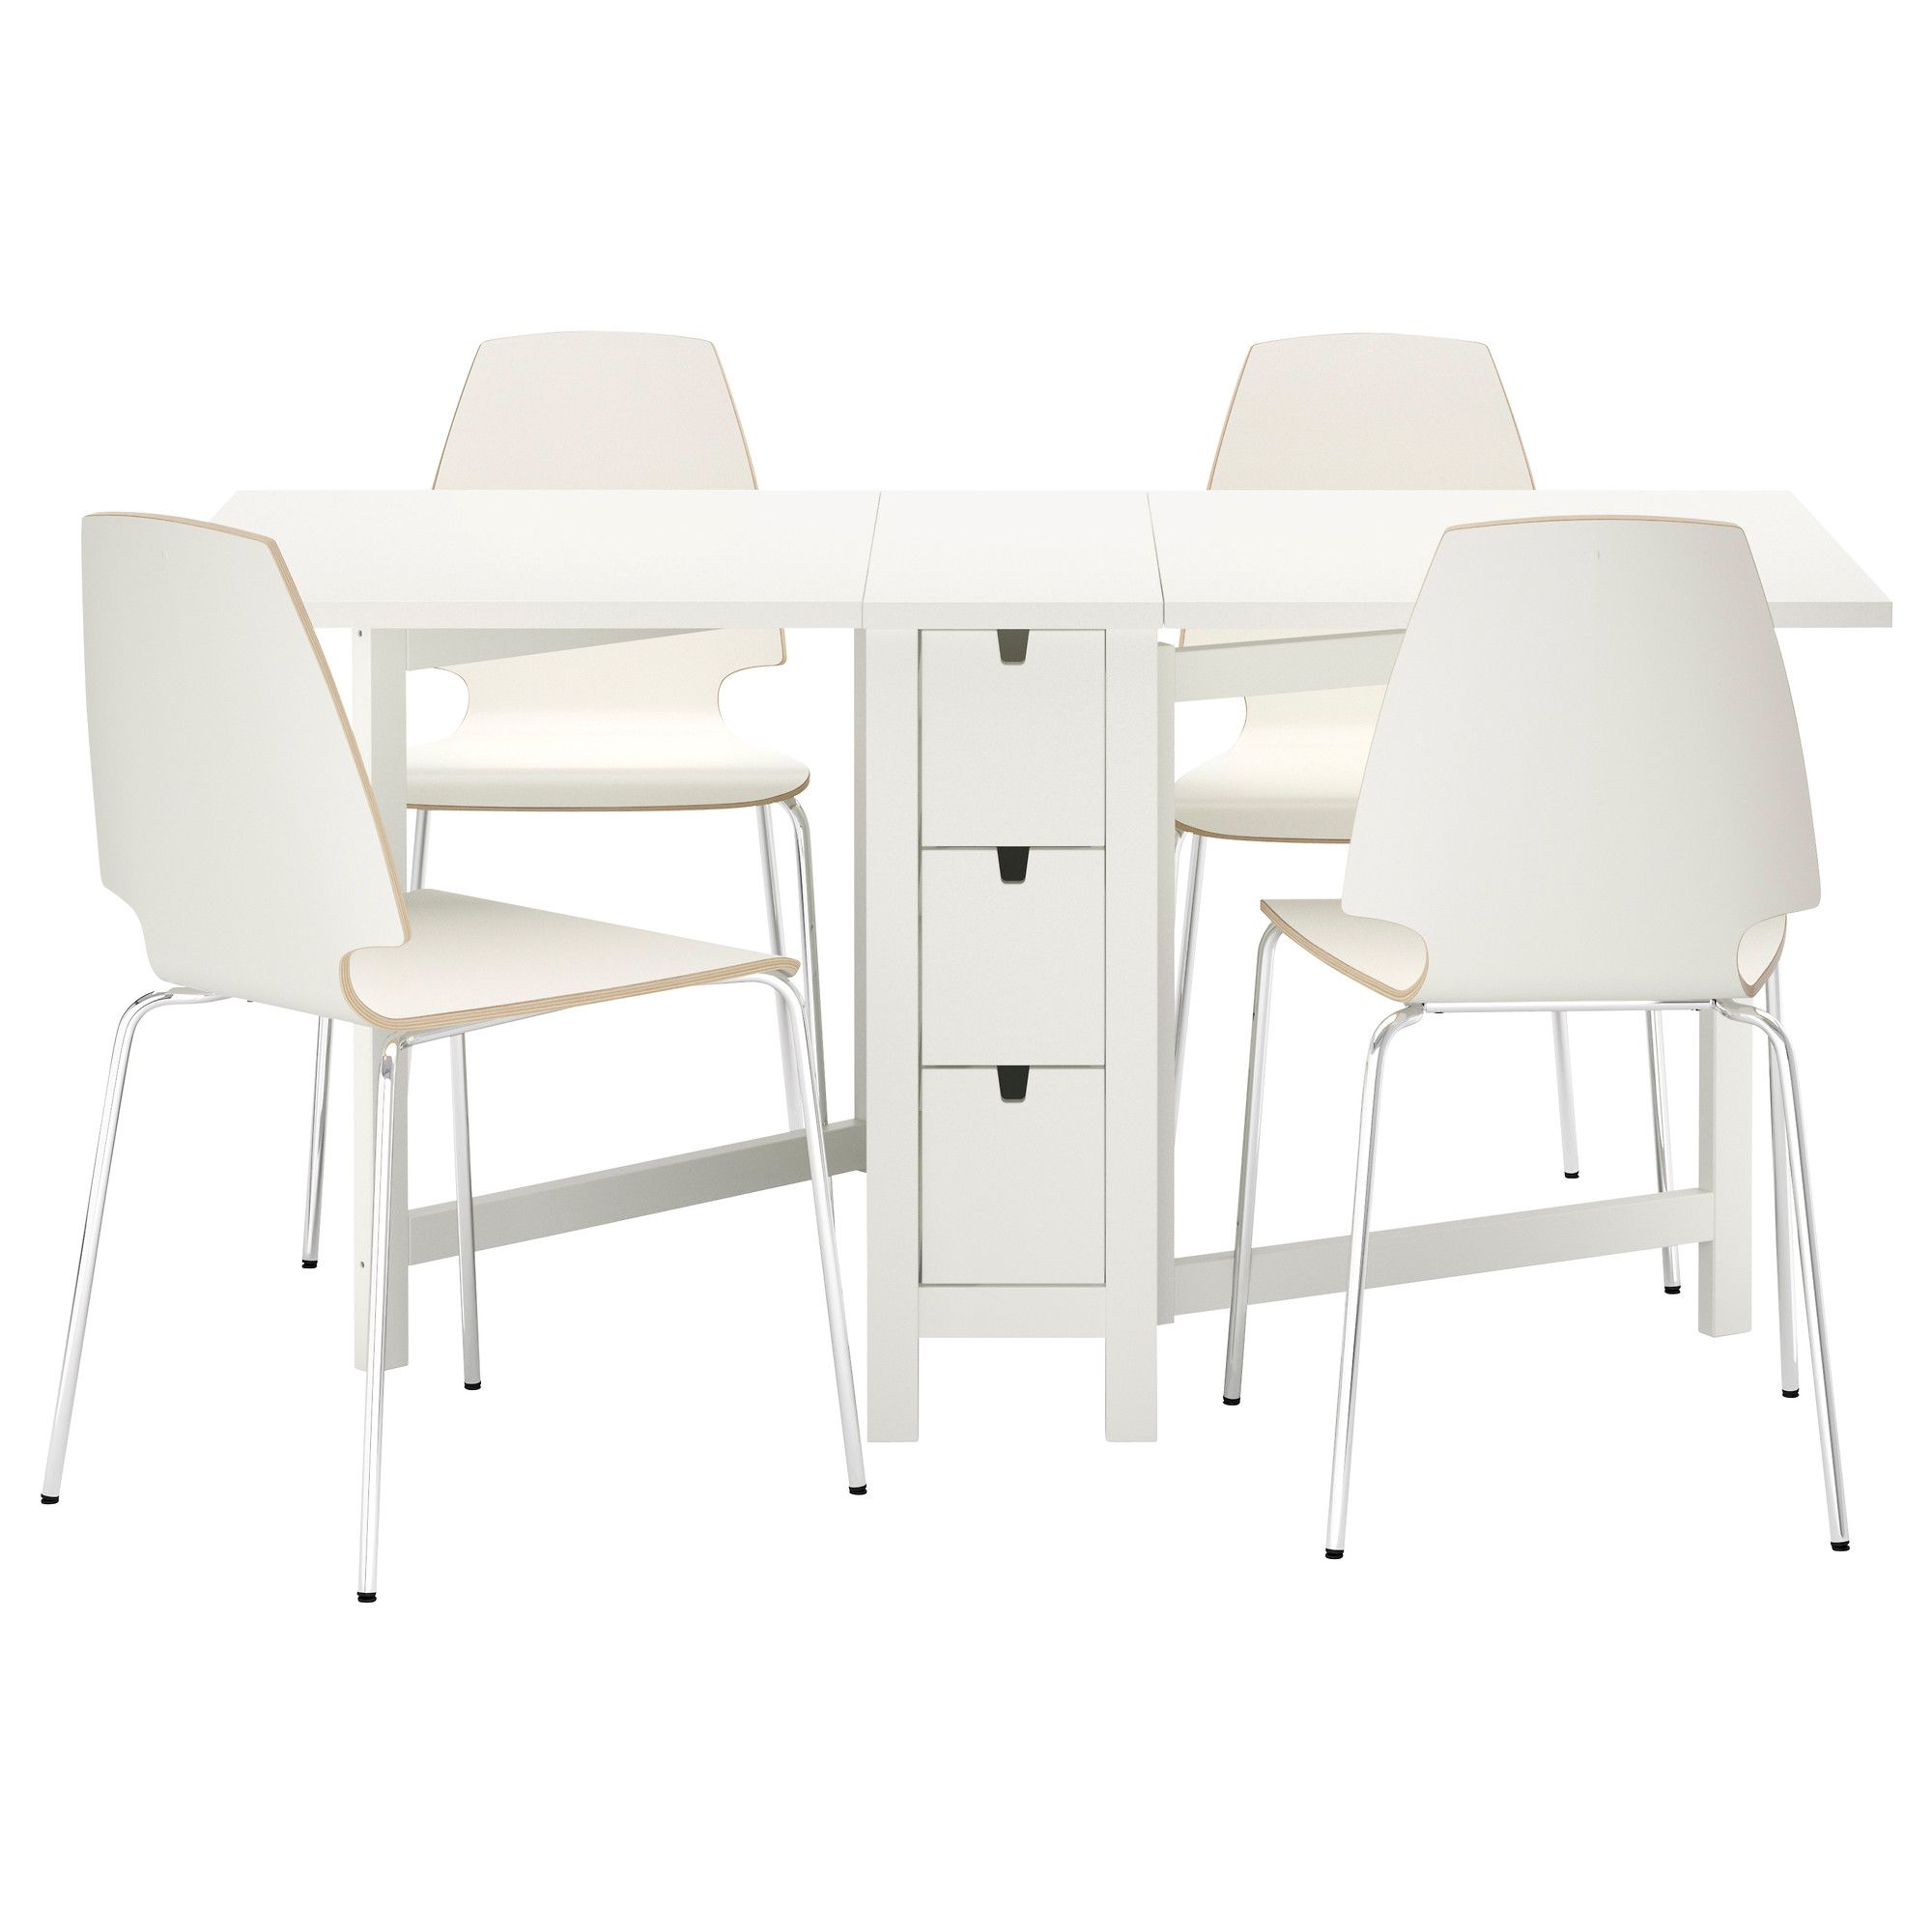 Tremendous Collapsible Dining Table Stack Able Chairs And Storage Beutiful Home Inspiration Truamahrainfo